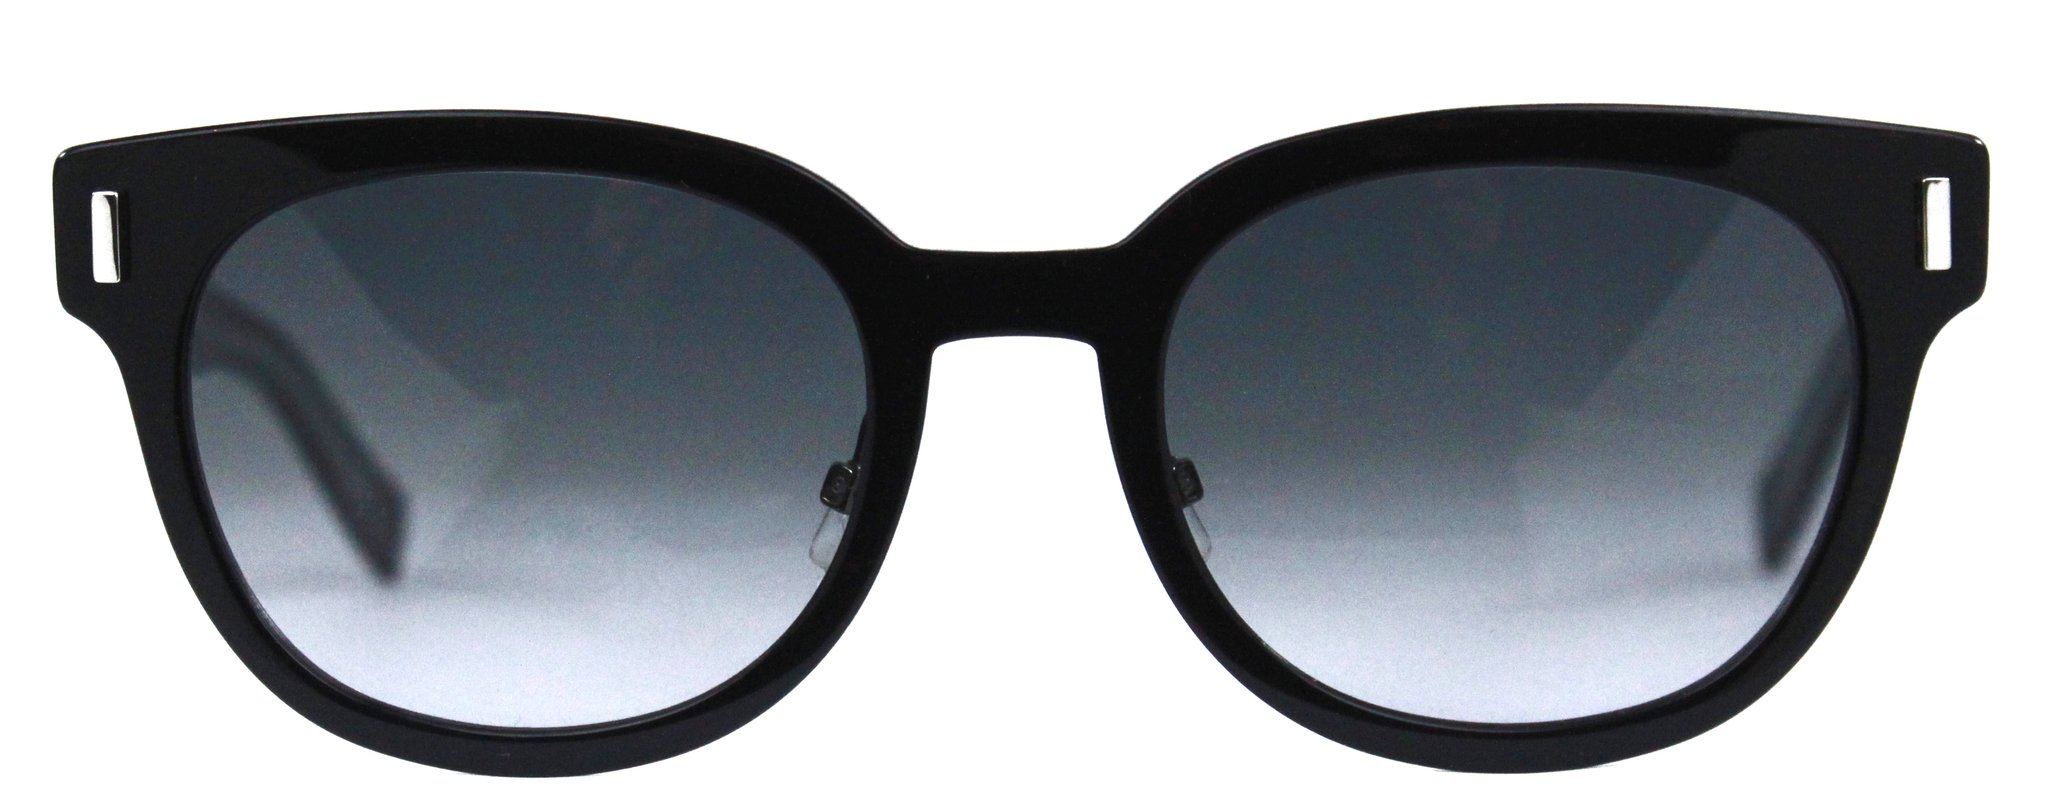 Christian Dior BLACKTIE2.0S E 7C5 Sunglasses